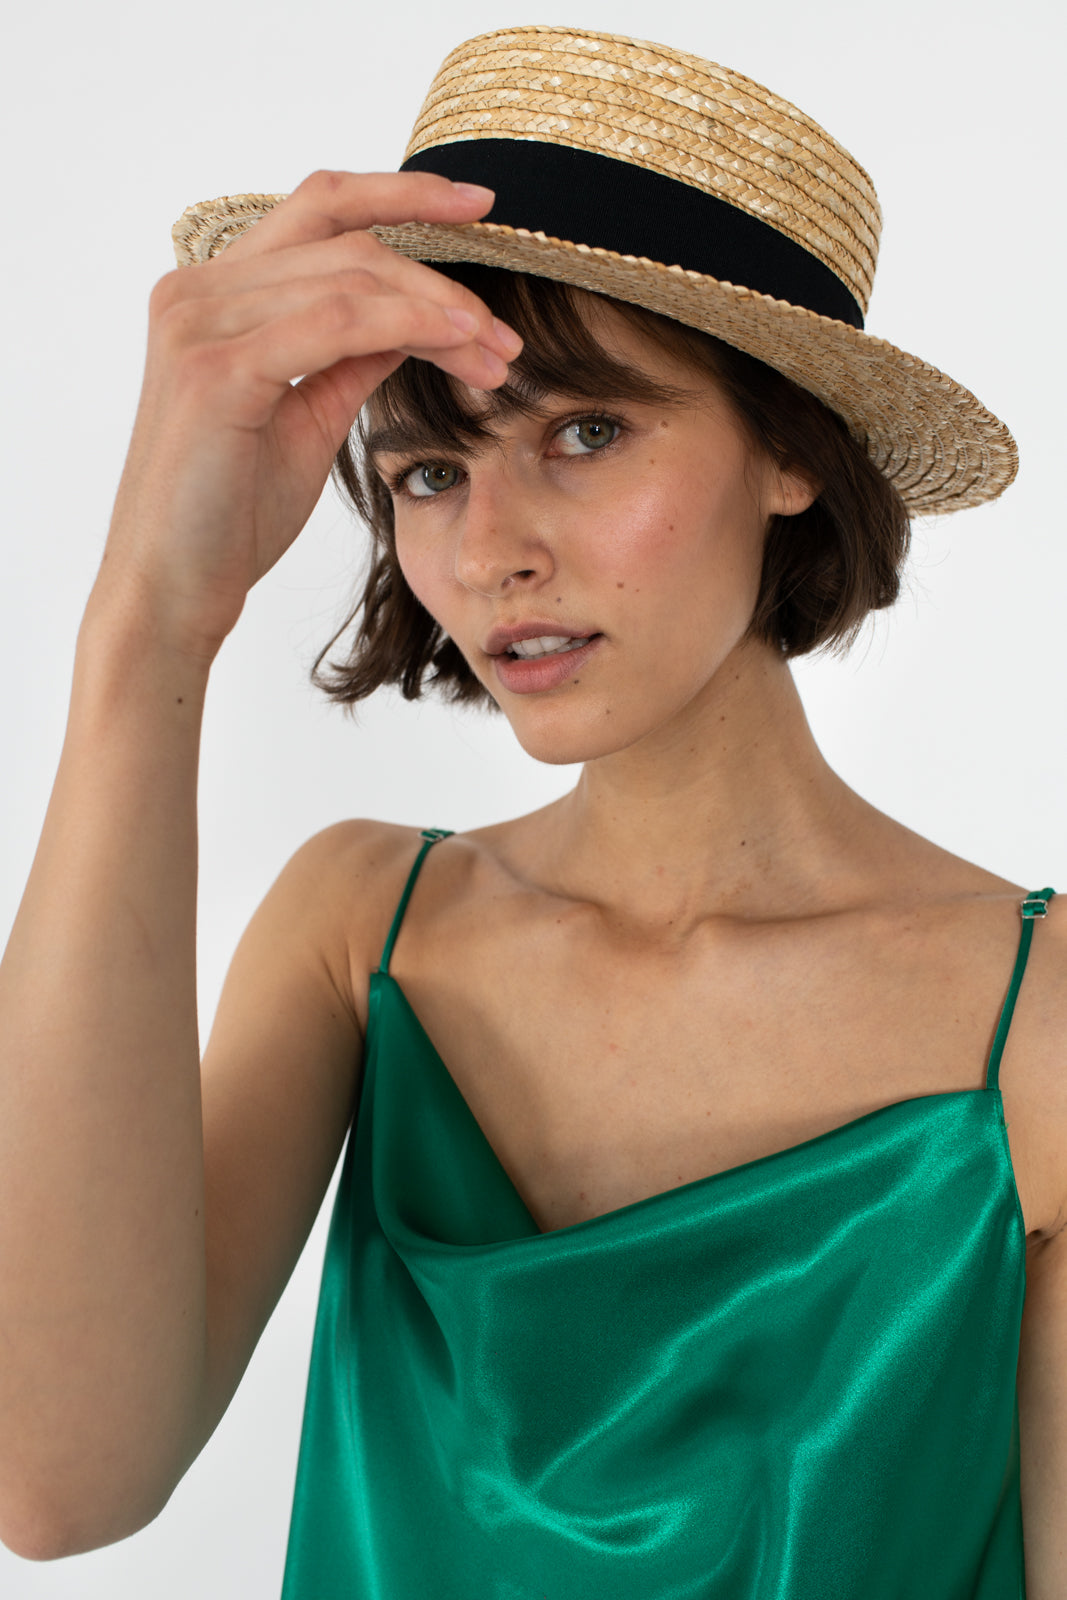 le-slap-statement-fashion-natural-straw-hat-make-up-summer-inspo